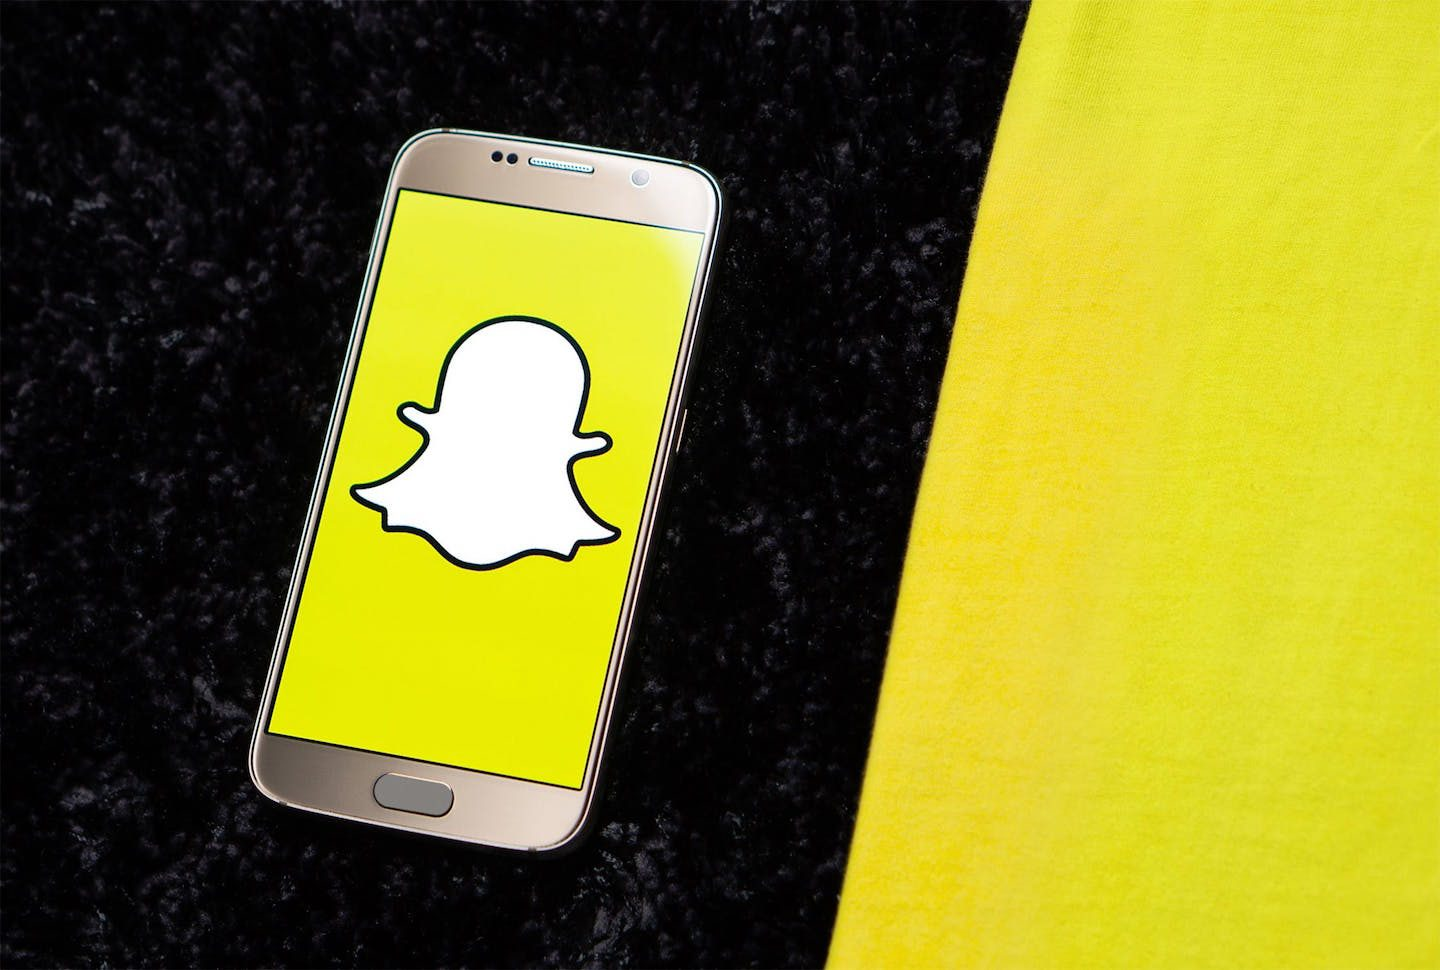 Snap's redesign slowed down user growth